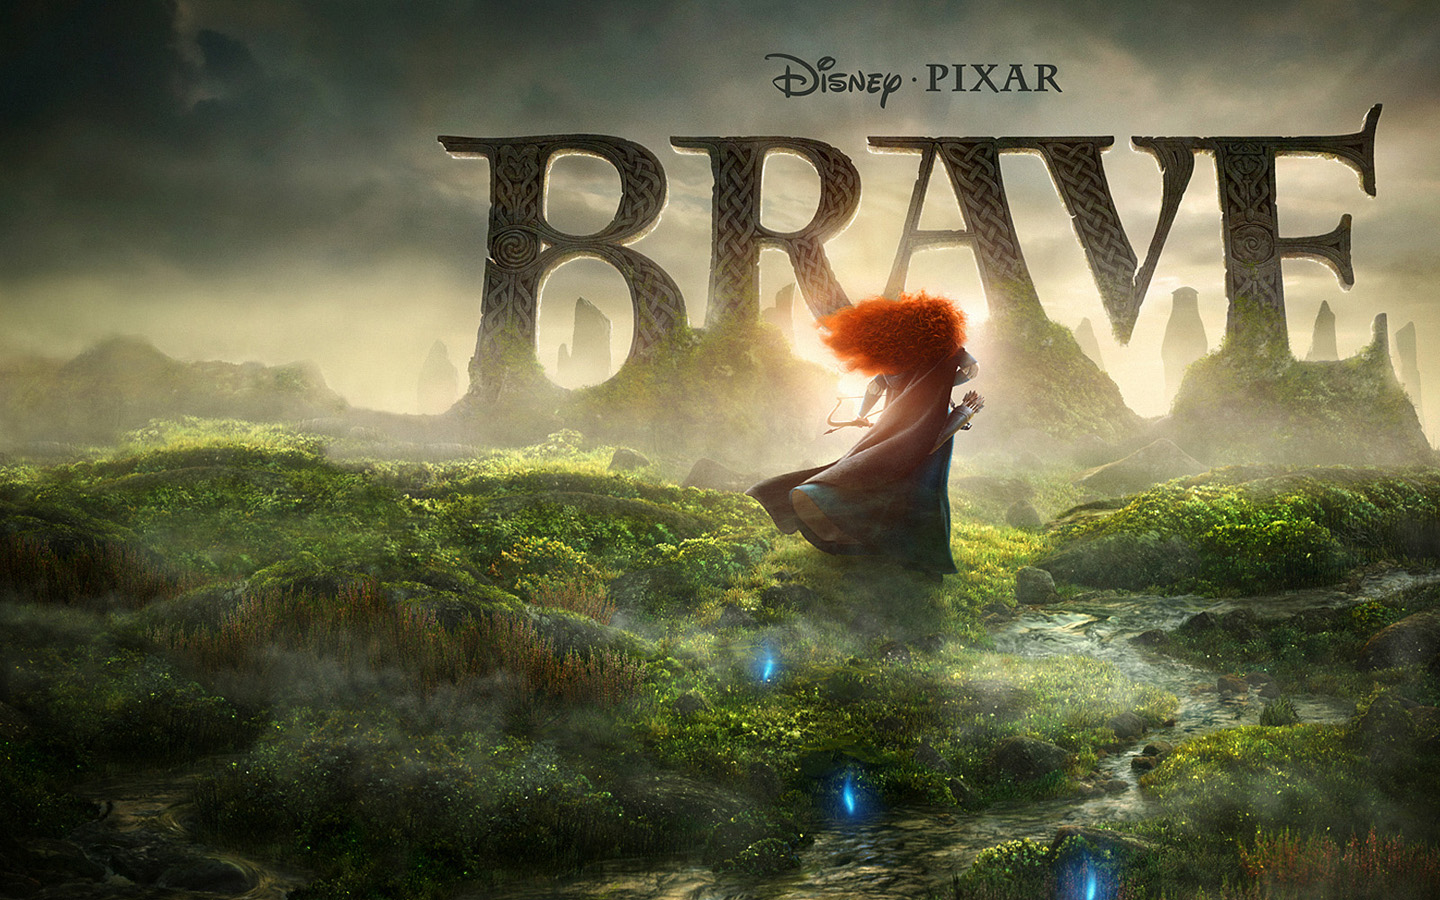 Disney Pixar Is Releasing Brave The Video Game For Wii And Nintendo